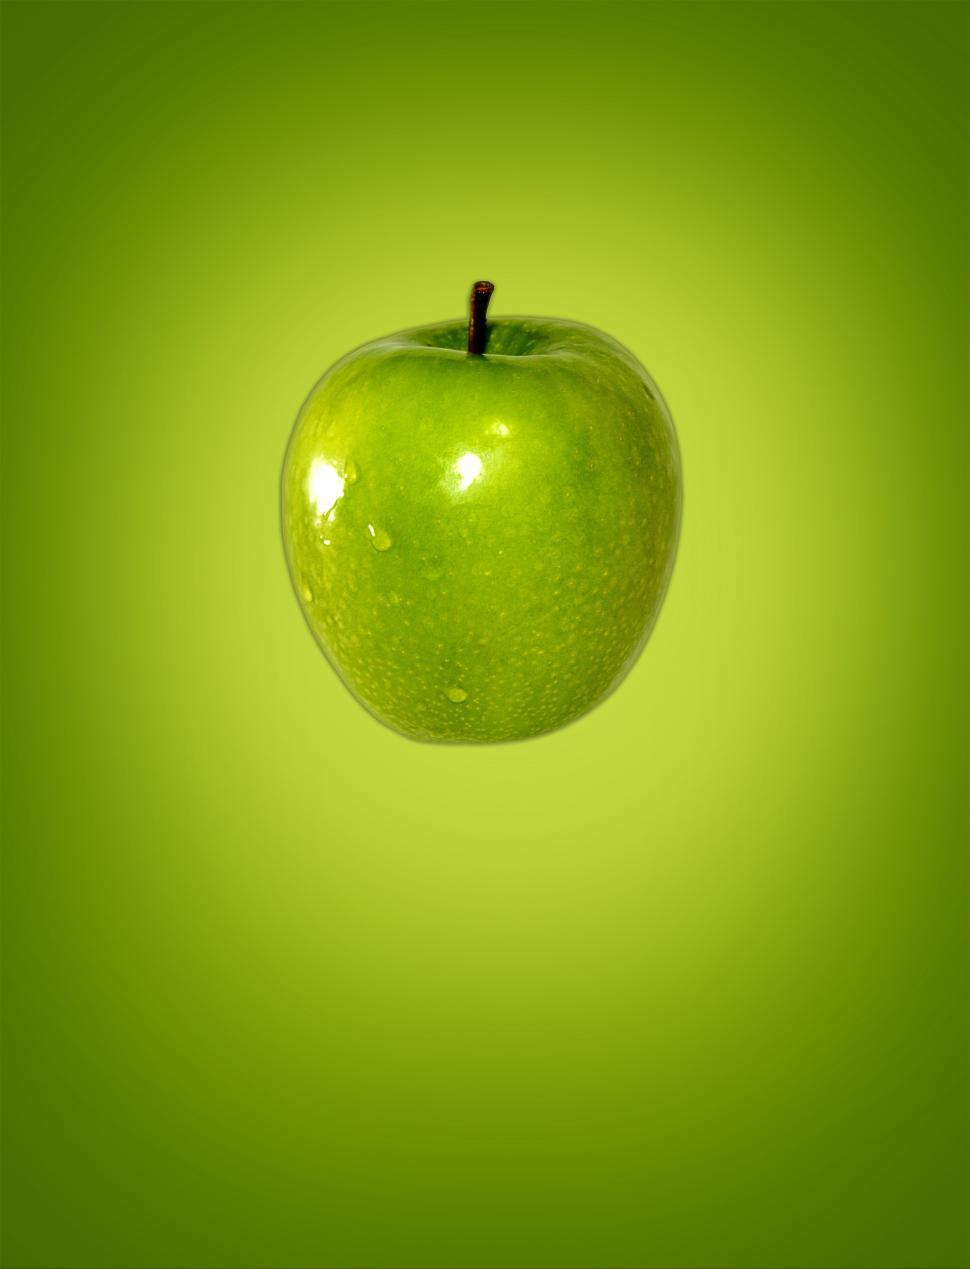 get free stock photos of green apple on green background online